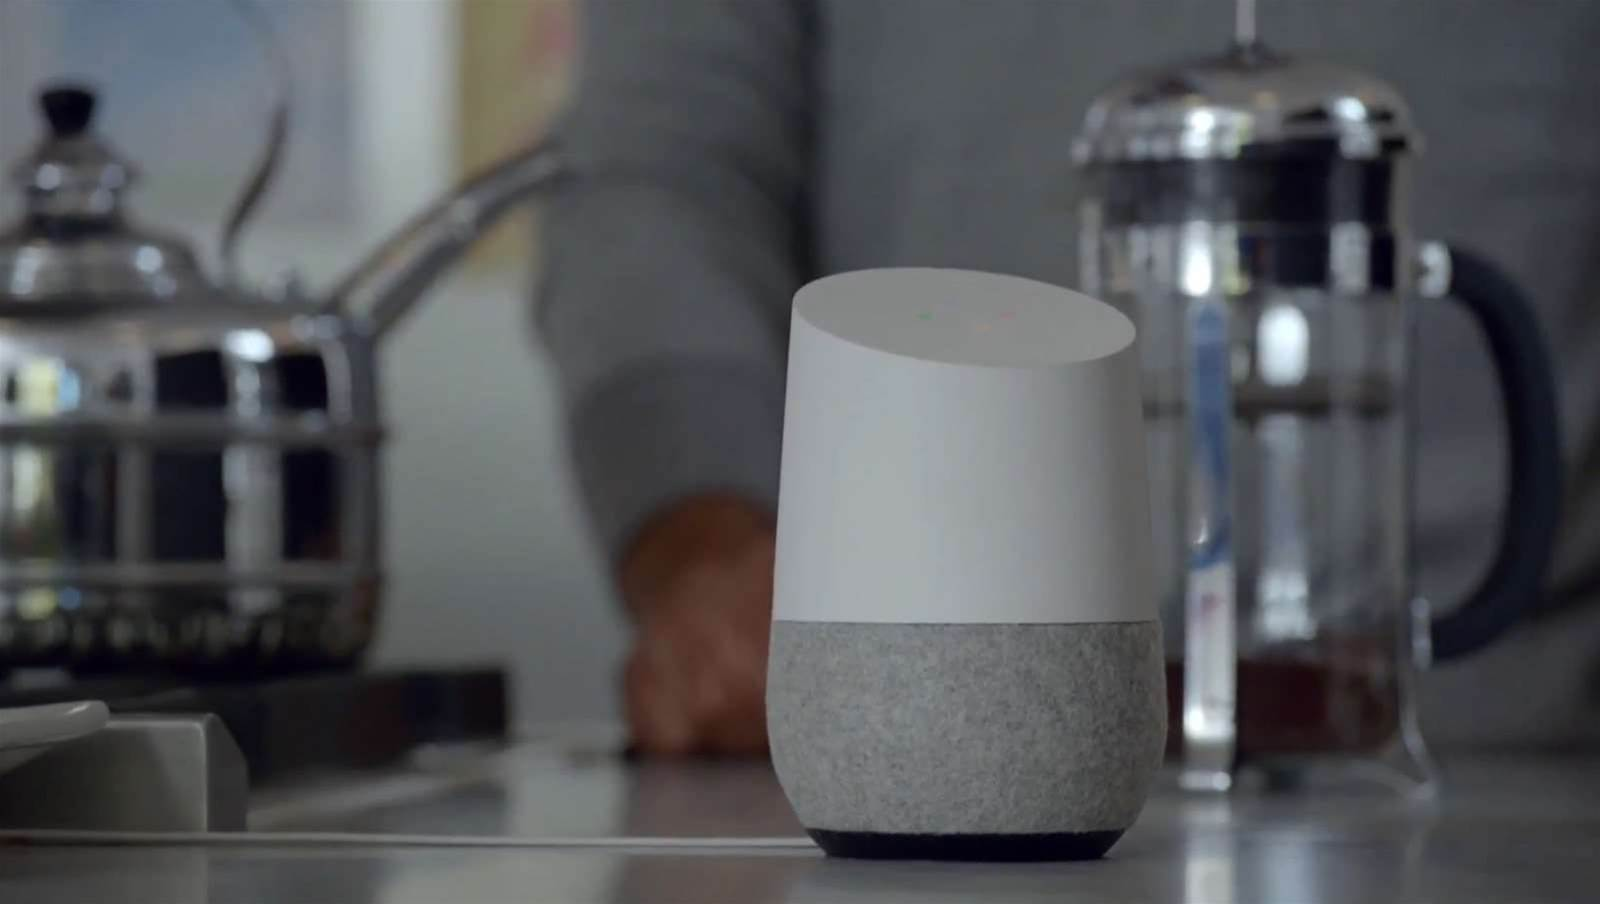 Google Home takes aim at smart home market